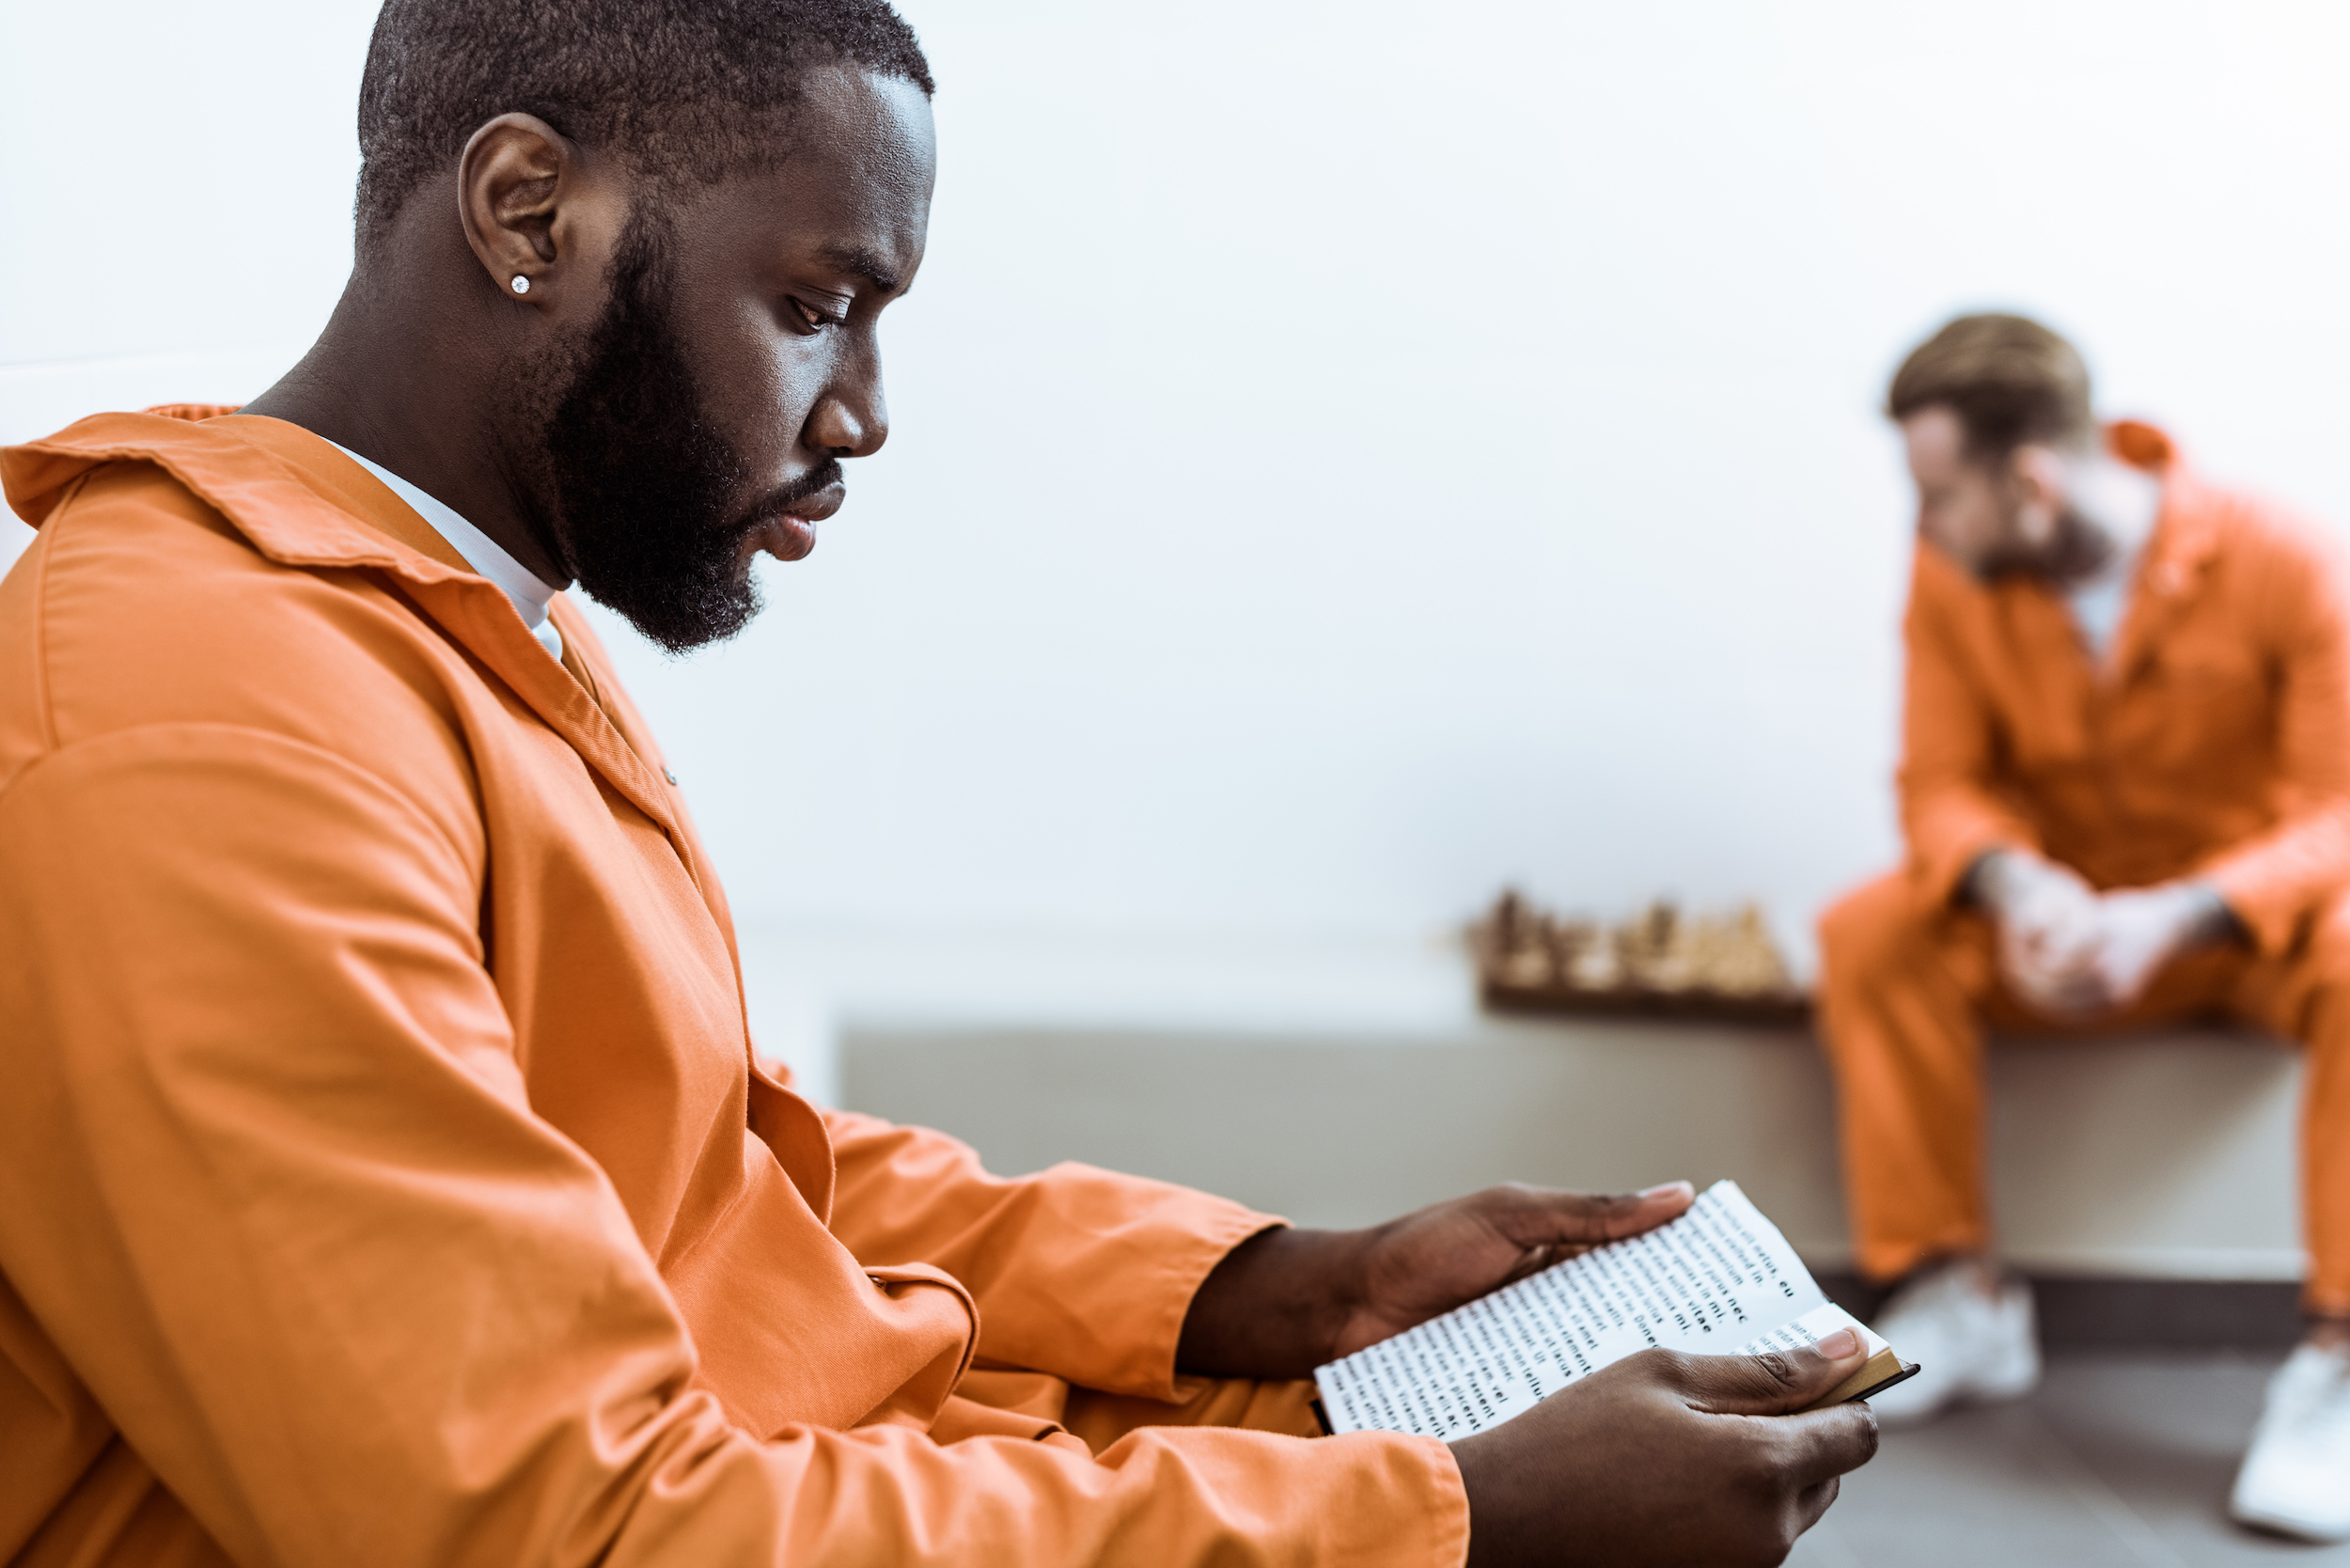 - HB94 was signed into law by Governor Pritzker in August of 2019 and is a significant step forward in our effort to reform Illinois' counterproductive and inhumane overreliance on incarceration.